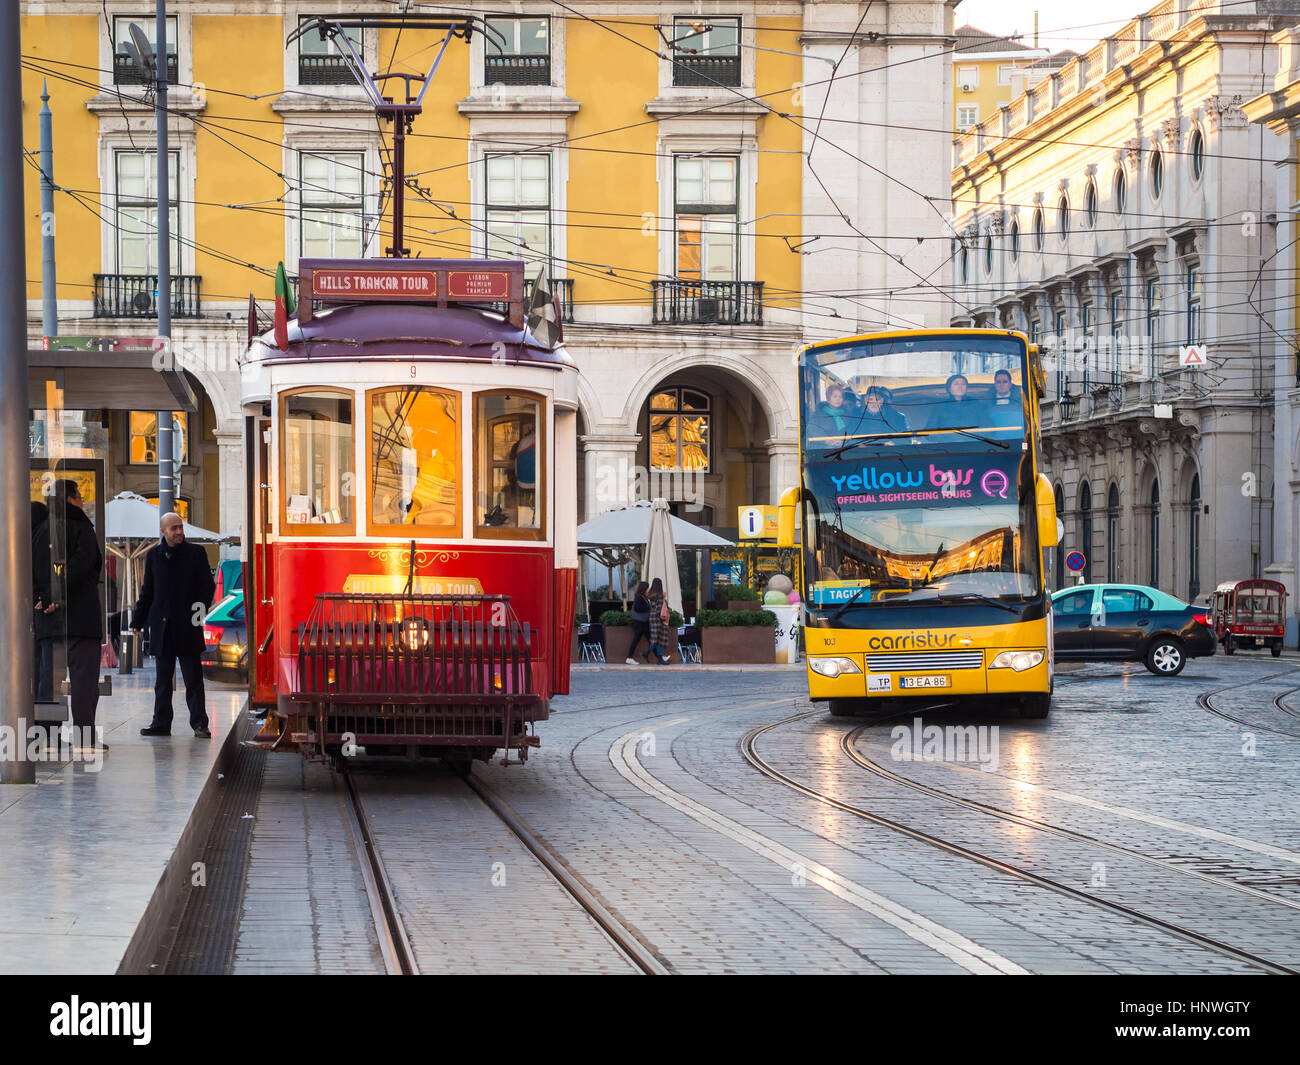 LISBON, PORTUGAL - JANUARY 10, 2017: Transport in Lisbon: typical old tram and a touristic bus on the Praca do Comercio - Stock Image